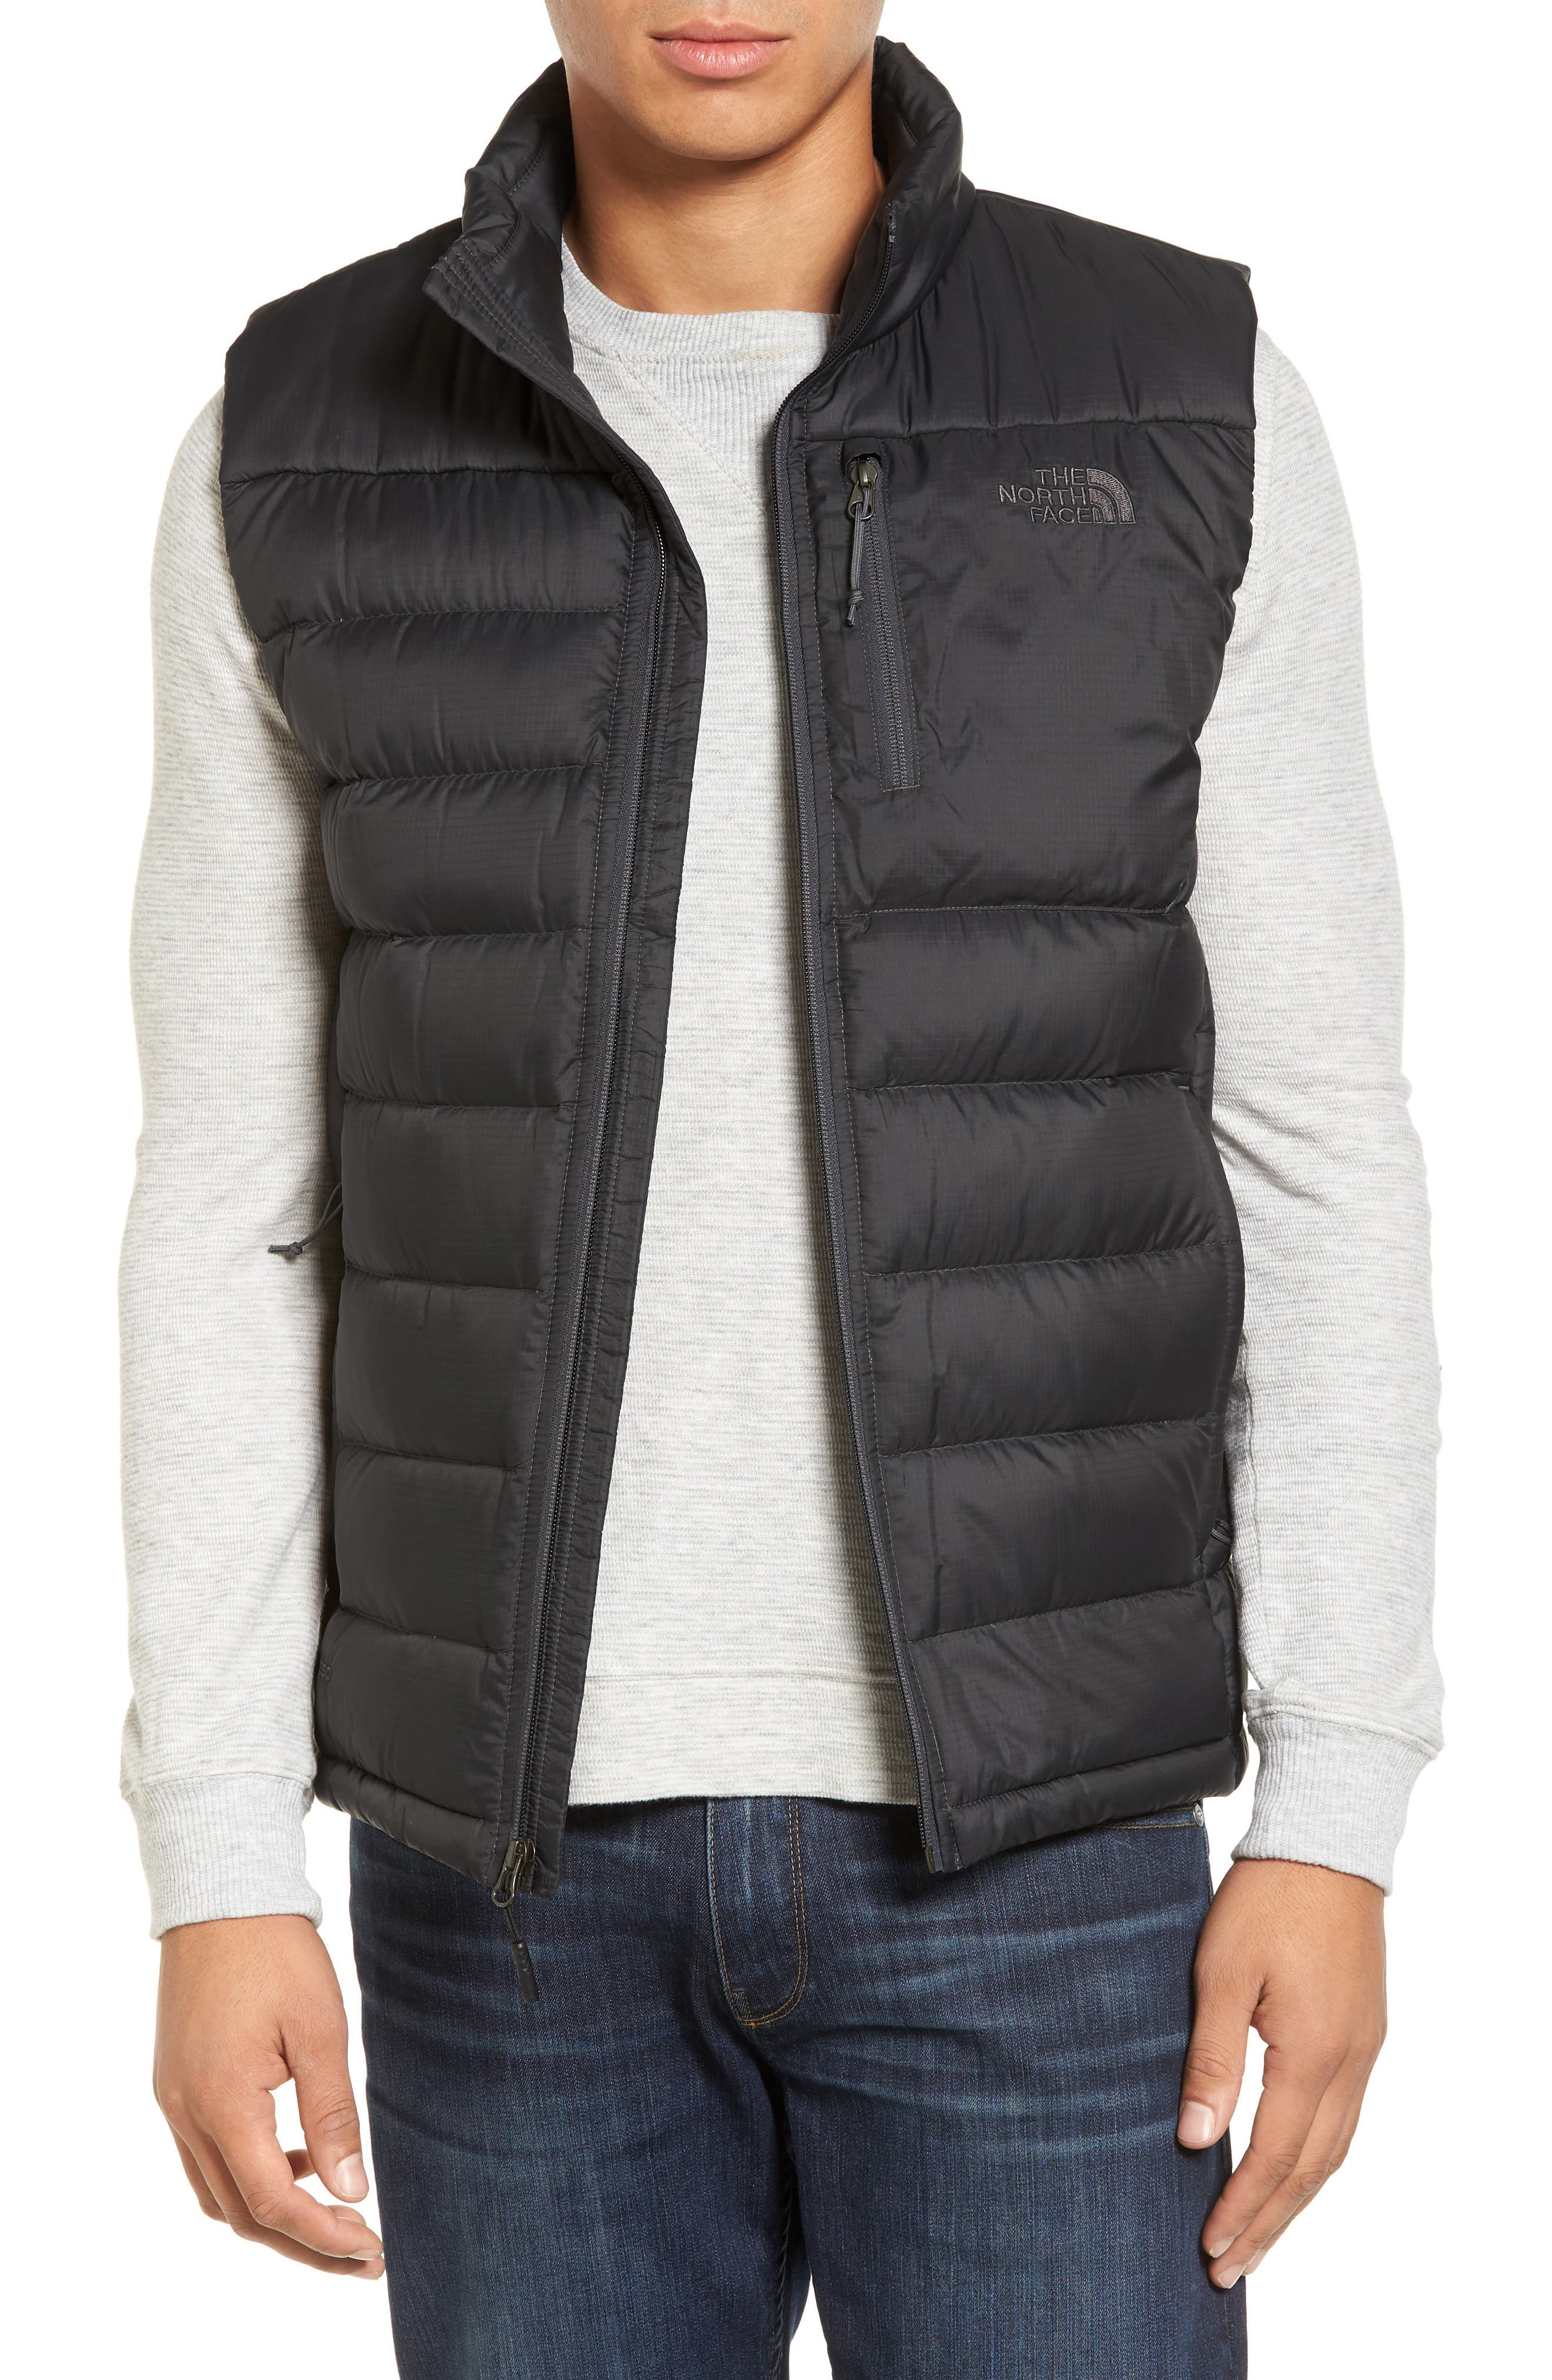 Aconcagua Down Vest,                             Main thumbnail 1, color,                             021